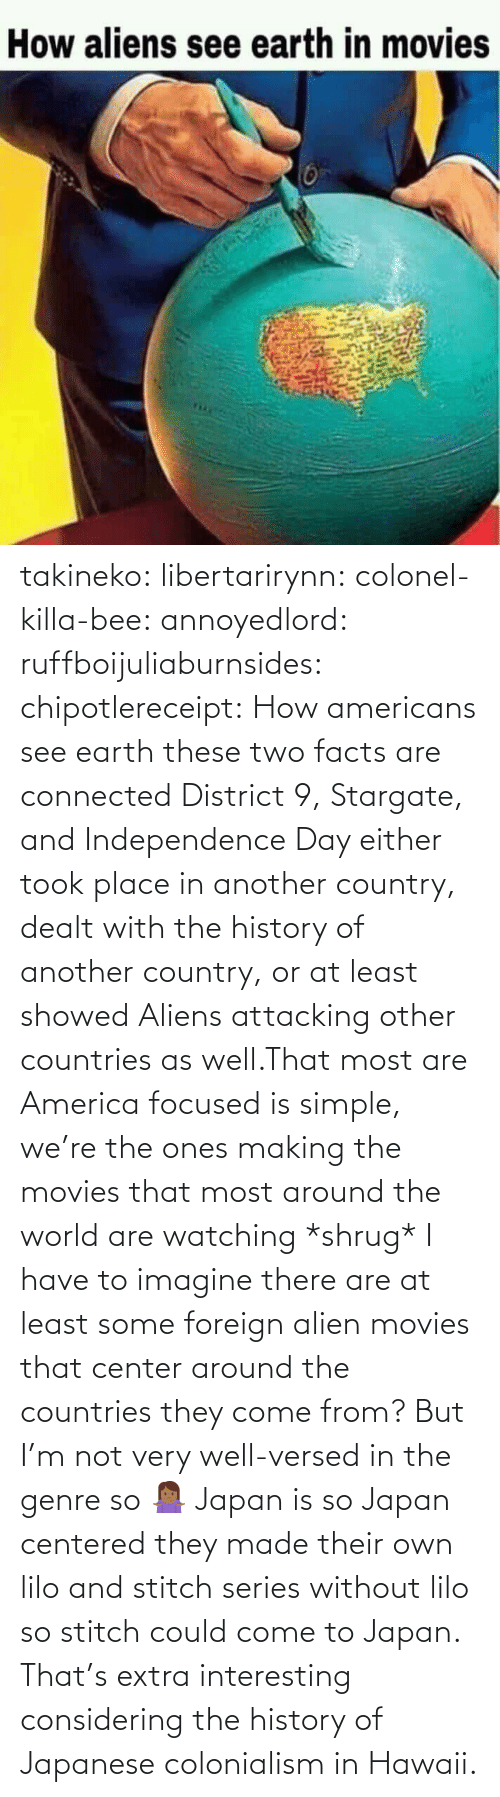 simple: takineko:  libertarirynn:  colonel-killa-bee:  annoyedlord: ruffboijuliaburnsides:  chipotlereceipt: How americans see earth these two facts are connected     District 9, Stargate, and Independence Day either took place in another country, dealt with the history of another country, or at least showed Aliens attacking other countries as well.That most are America focused is simple, we're the ones making the movies that most around the world are watching *shrug*   I have to imagine there are at least some foreign alien movies that center around the countries they come from? But I'm not very well-versed in the genre so 🤷🏾‍♀️   Japan is so Japan centered they made their own lilo and stitch series without lilo so stitch could come to Japan.    That's extra interesting considering the history of Japanese colonialism in Hawaii.